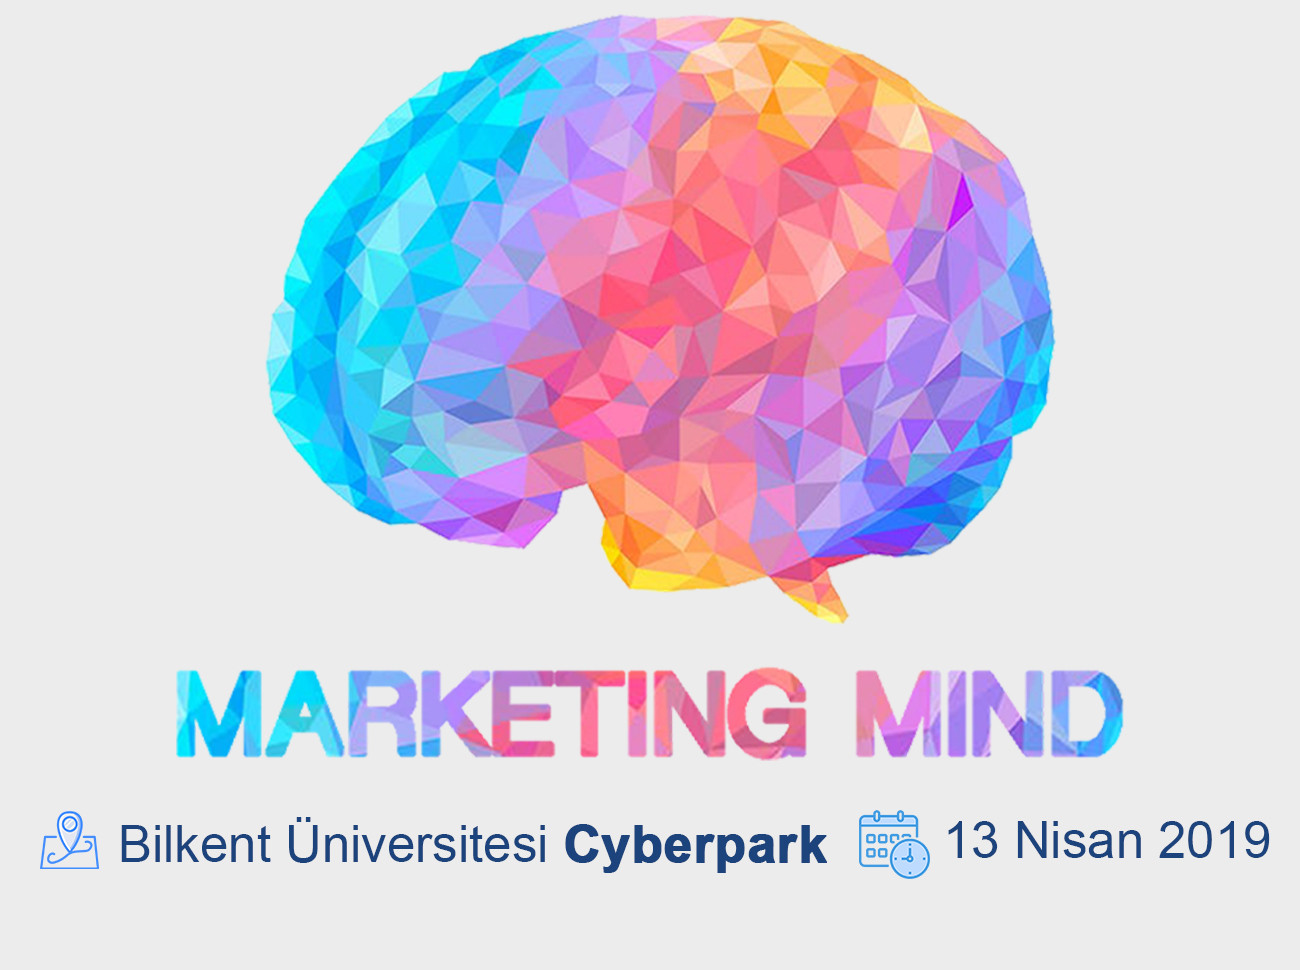 Marketing Mind 13 Nisan'da Bilkent Üniversitesi'nde